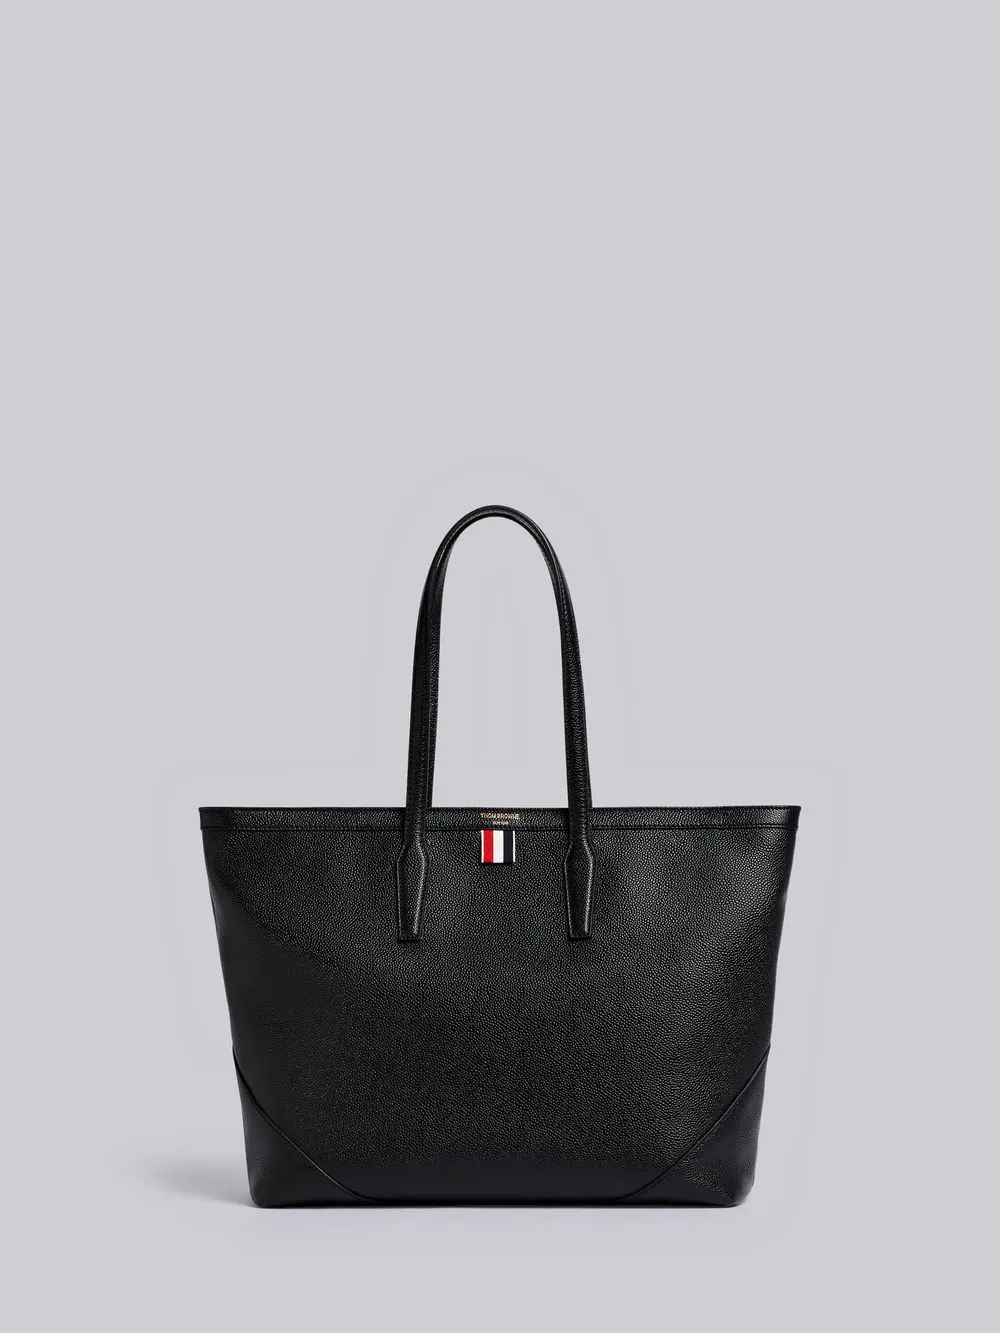 Thom Browne Textured Large Shopper Tote In Black